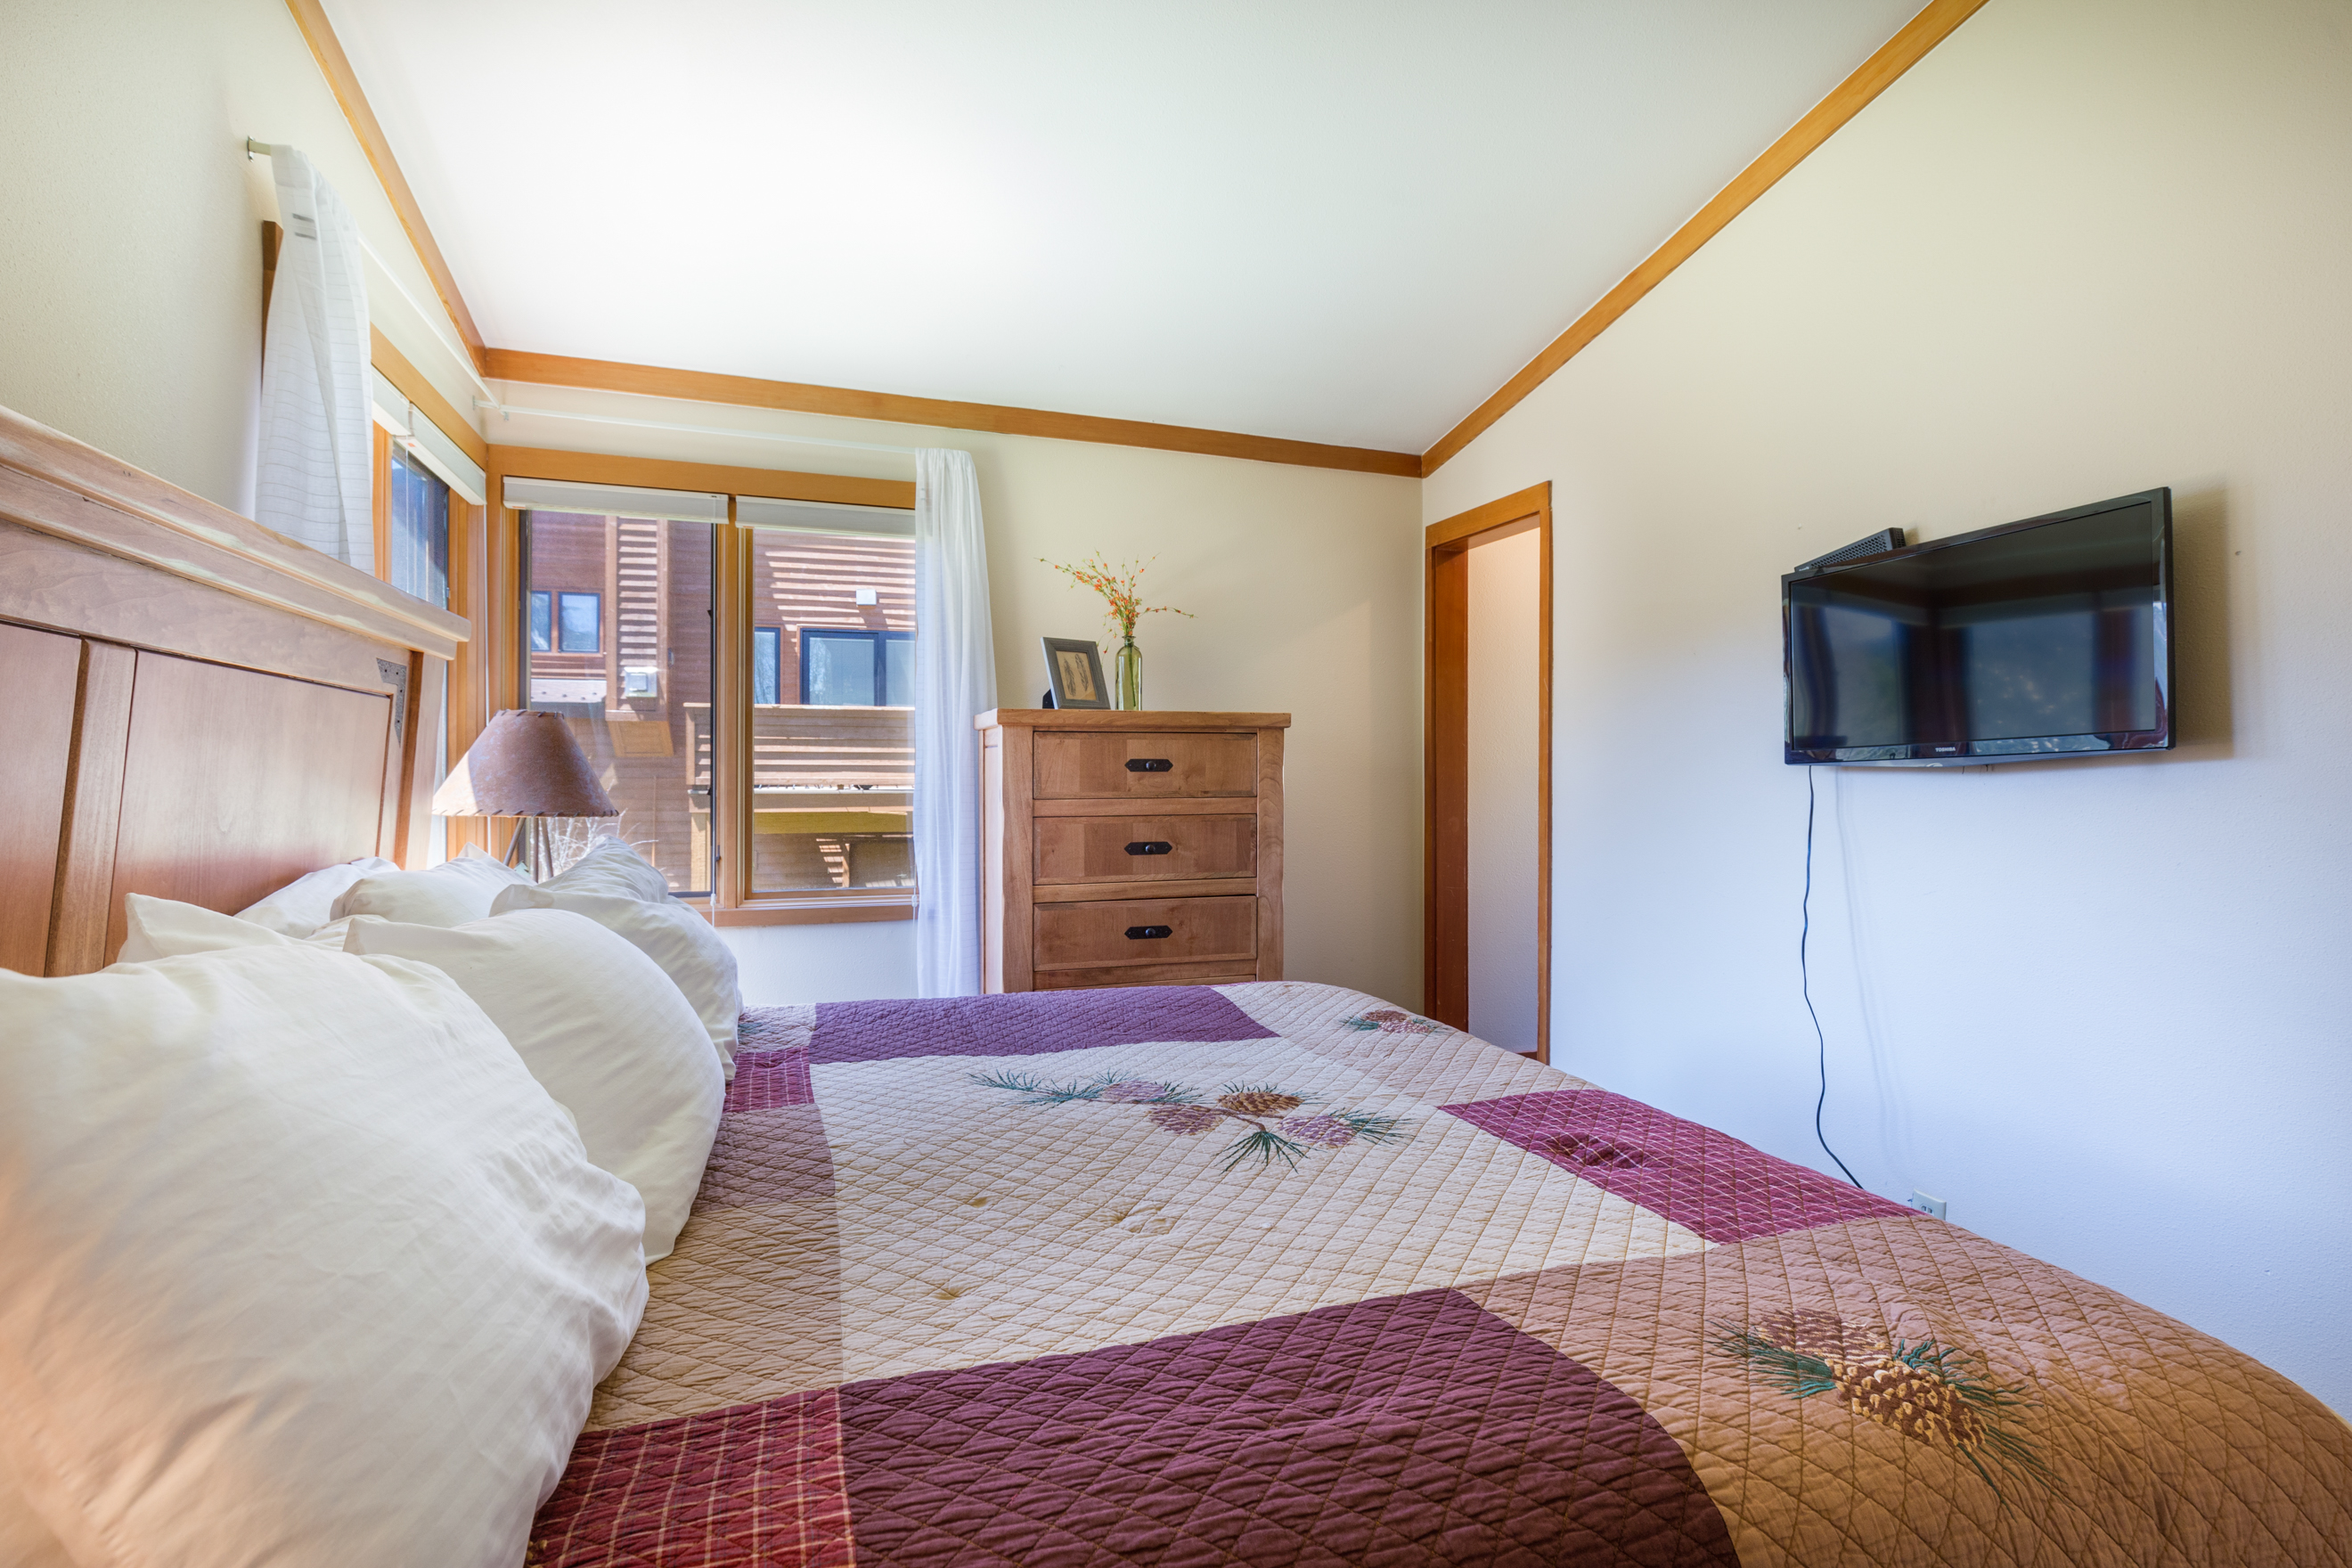 The first guest bedroom features a queen-sized bed and a mounted flat screenTV.